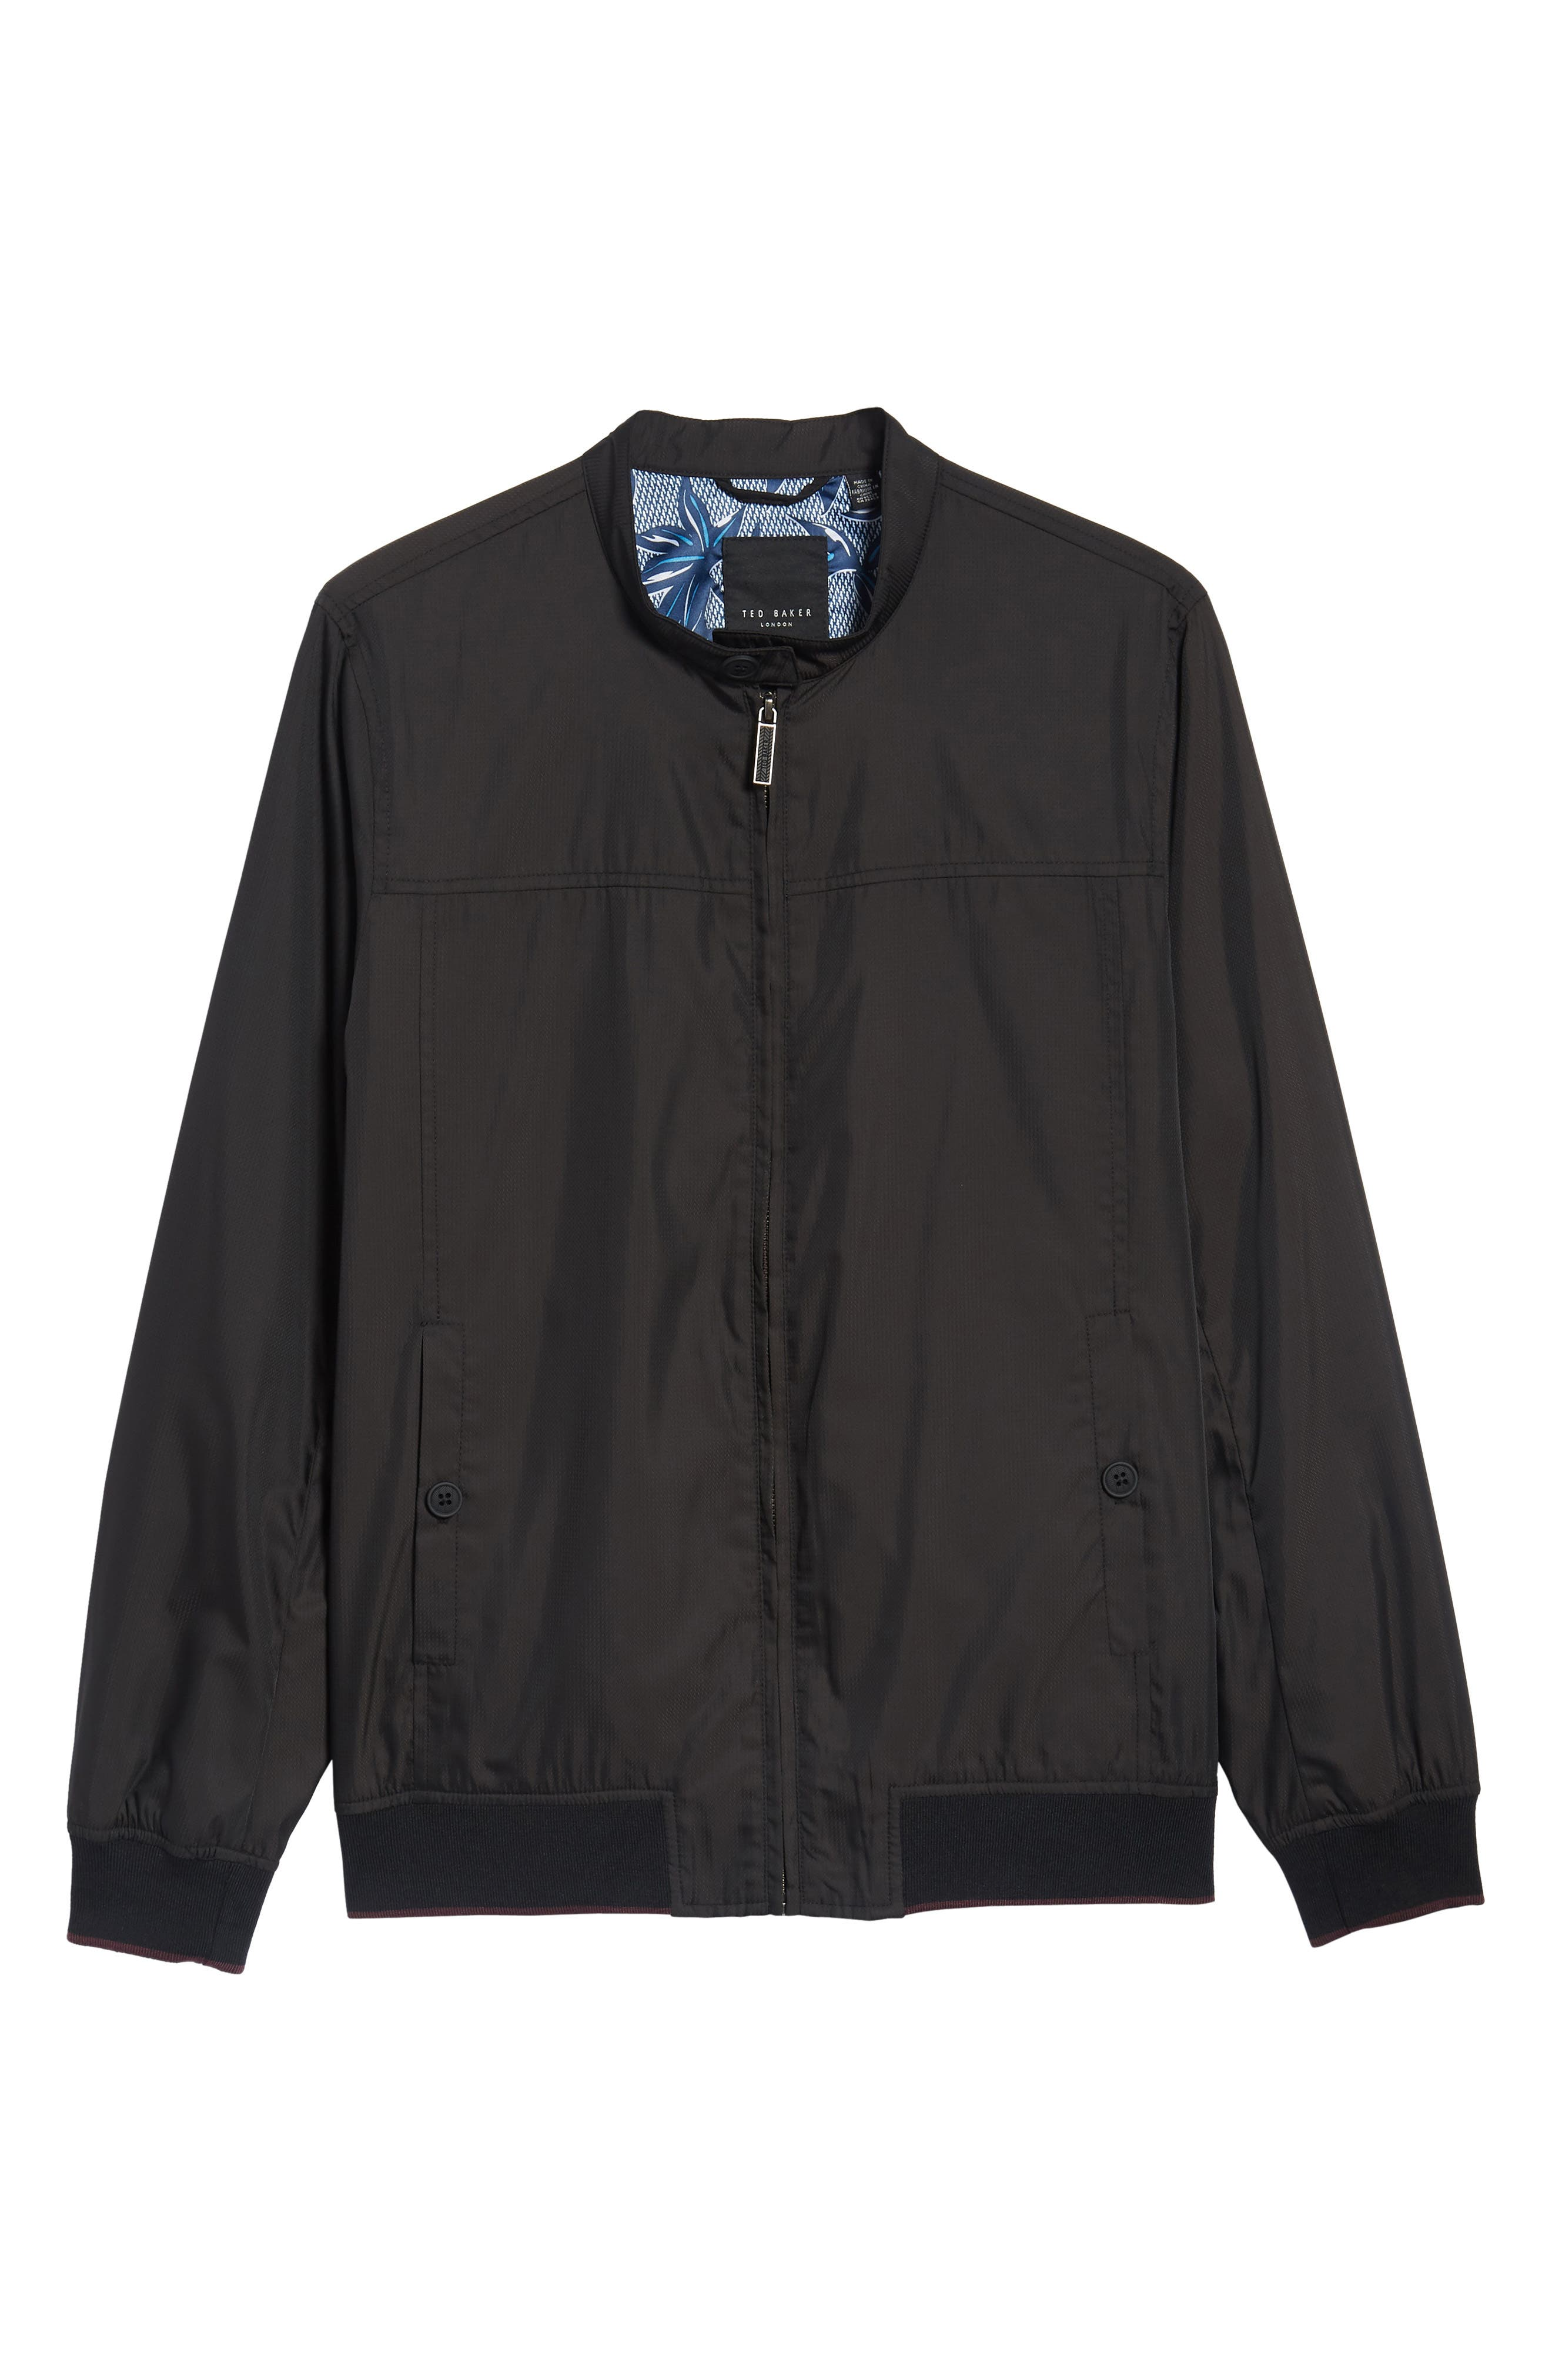 Calgar Nylon Bomber Jacket,                             Alternate thumbnail 5, color,